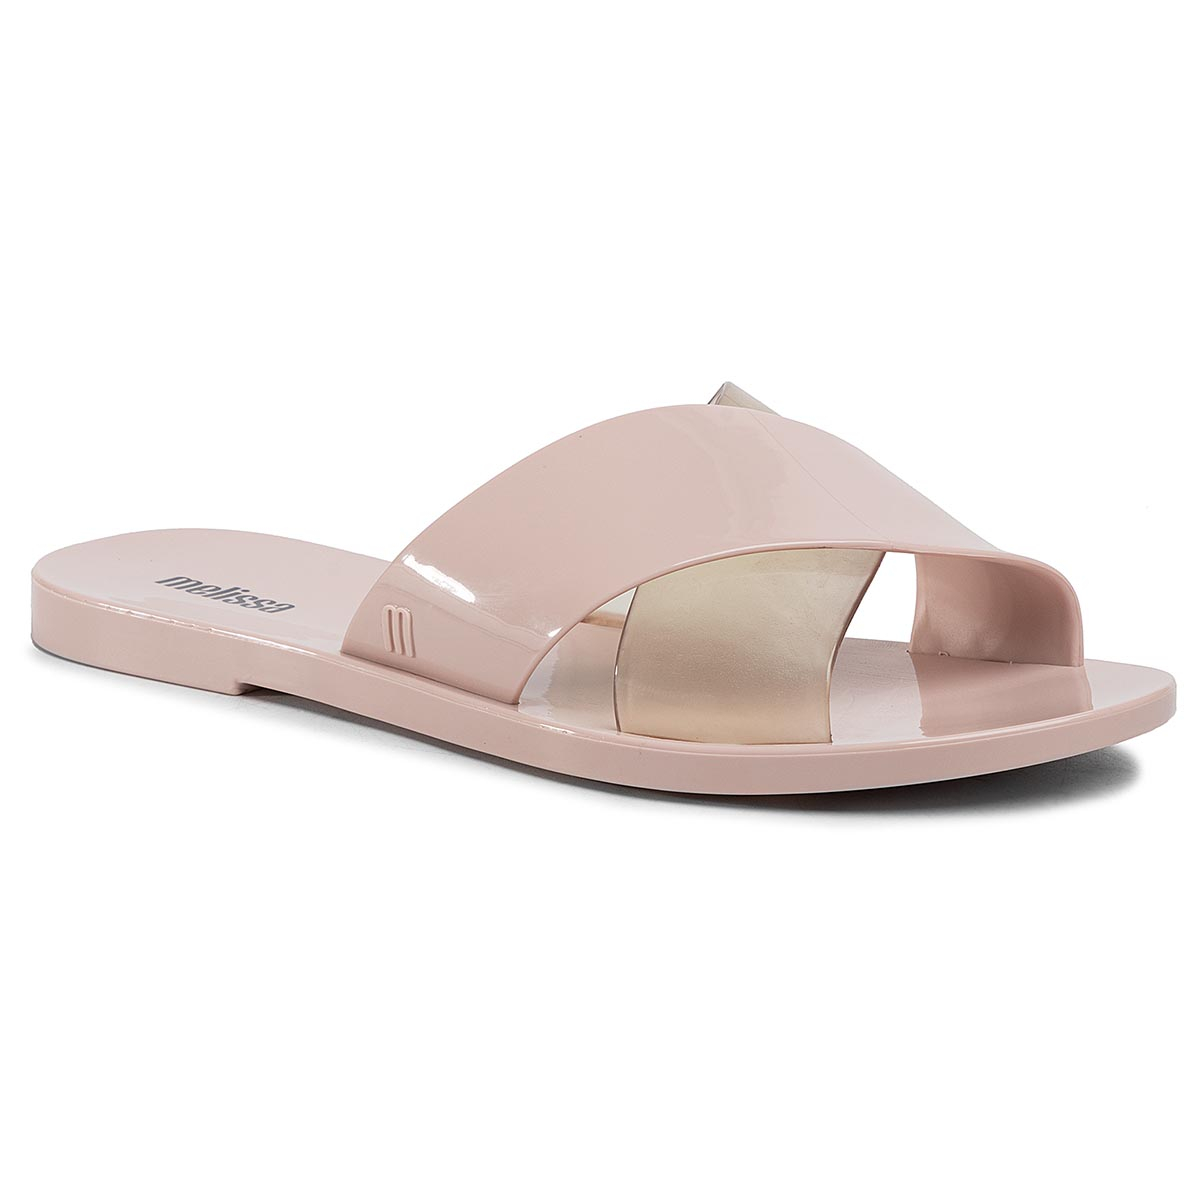 Șlapi MELISSA - Essential Slide Ad 32755 Light Pink/Pink 53487